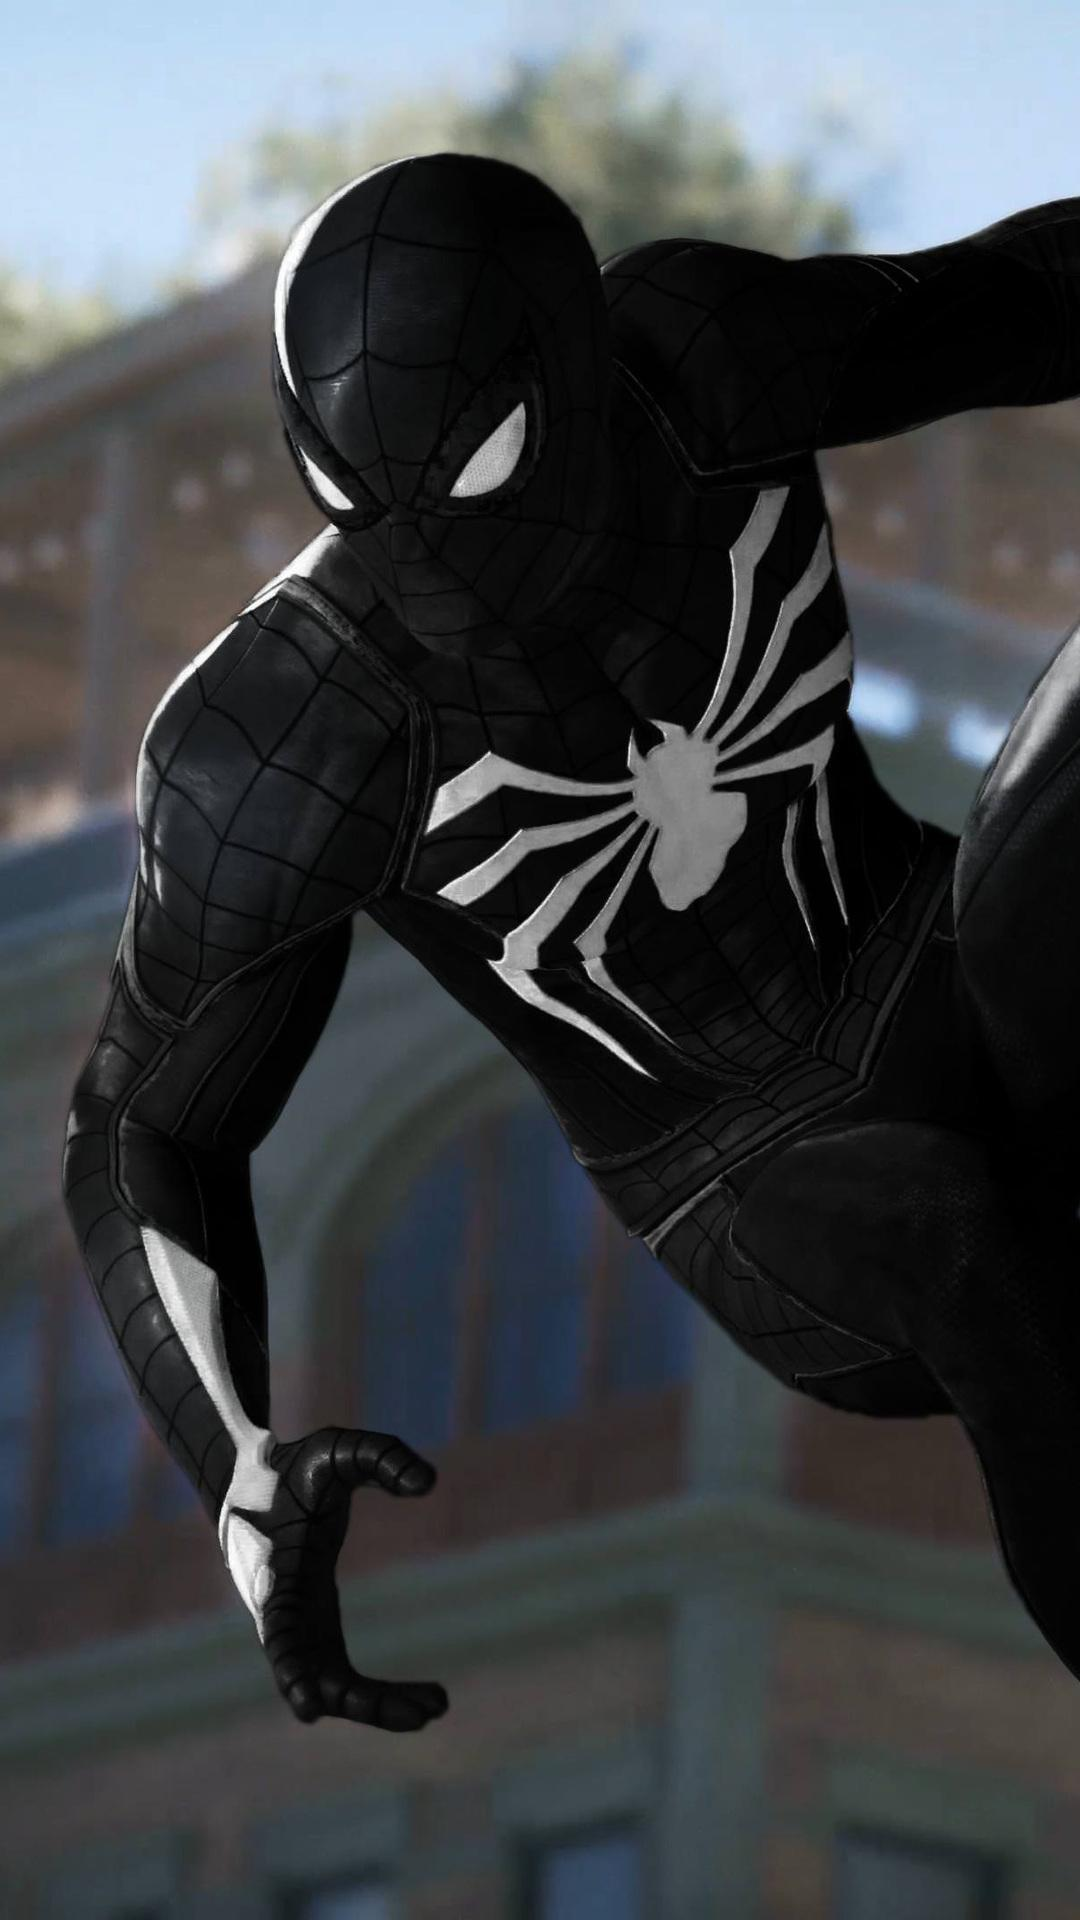 Black Spider Man Hd Wallpapers For Android Apk Download